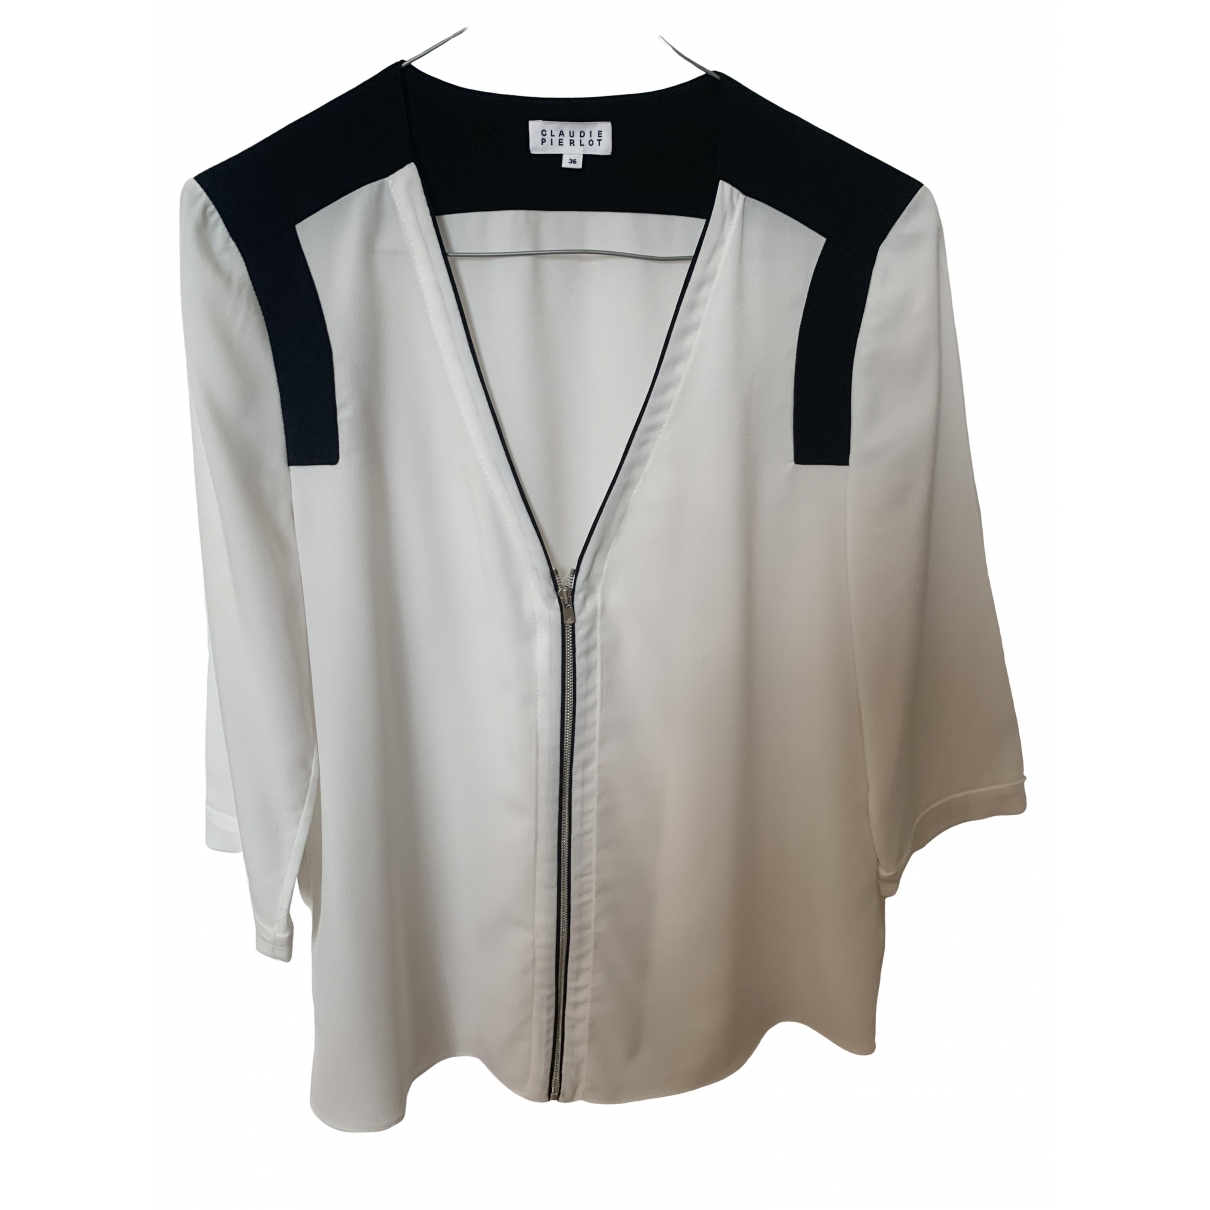 Claudie Pierlot \N Top in  Weiss Polyester